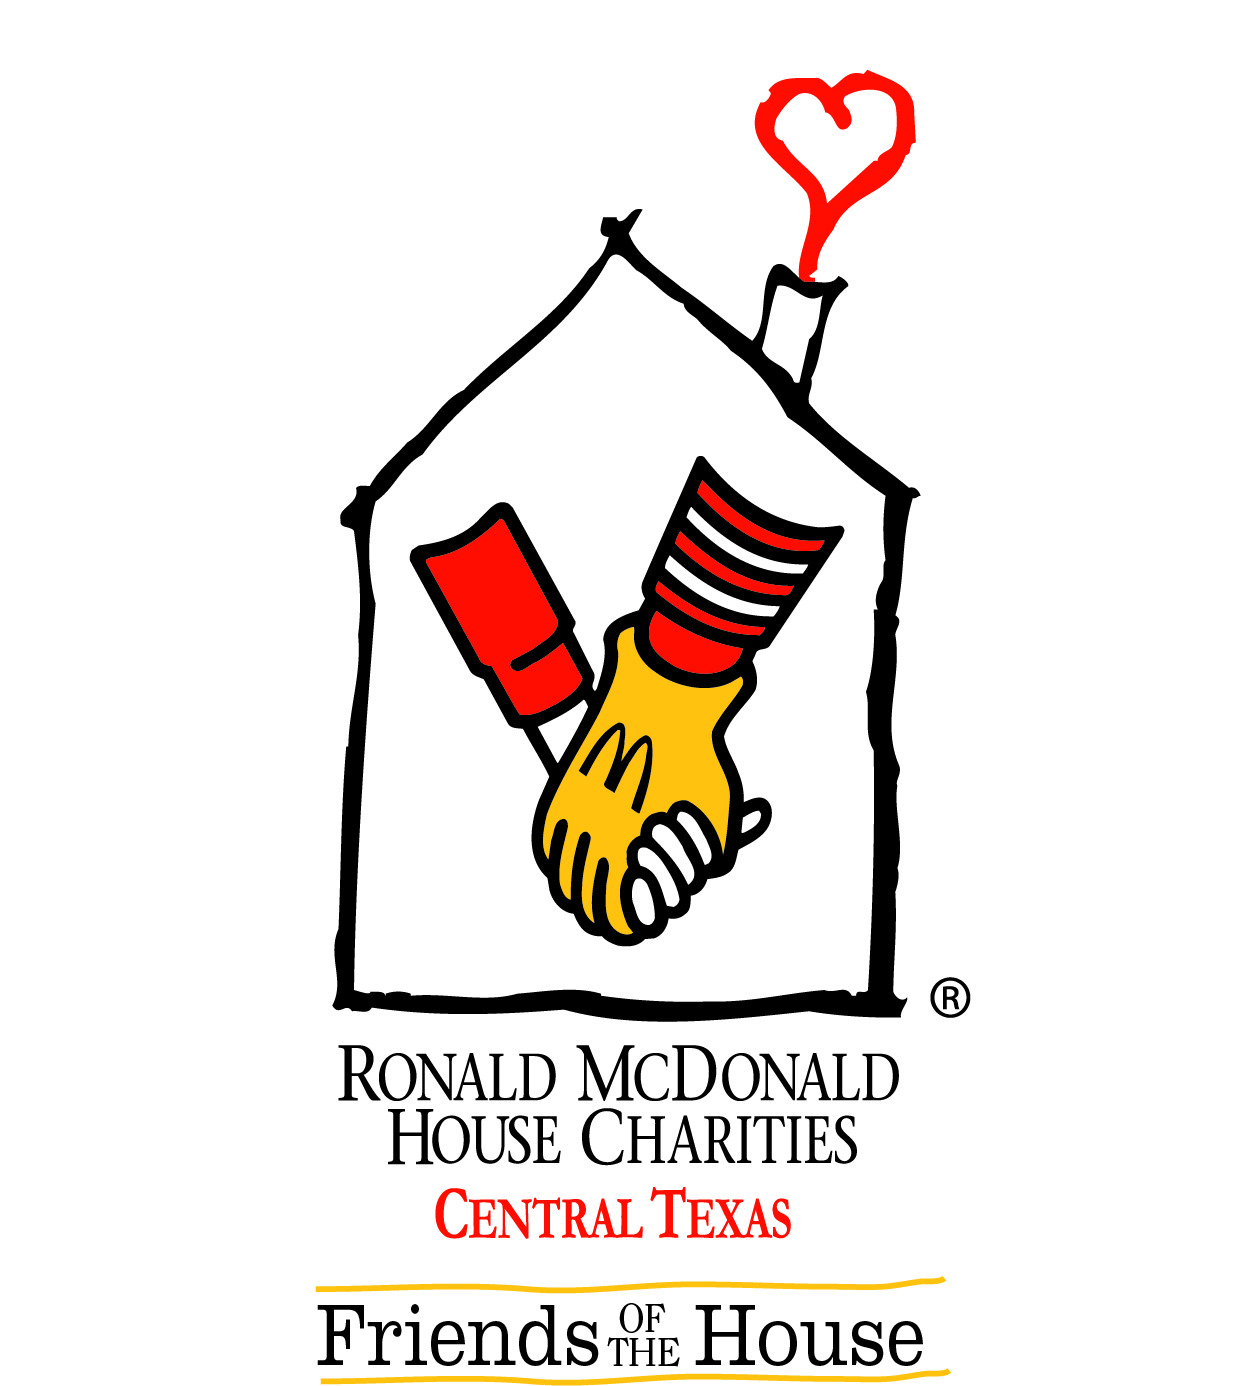 rmhc austin relationship with mcdonalds